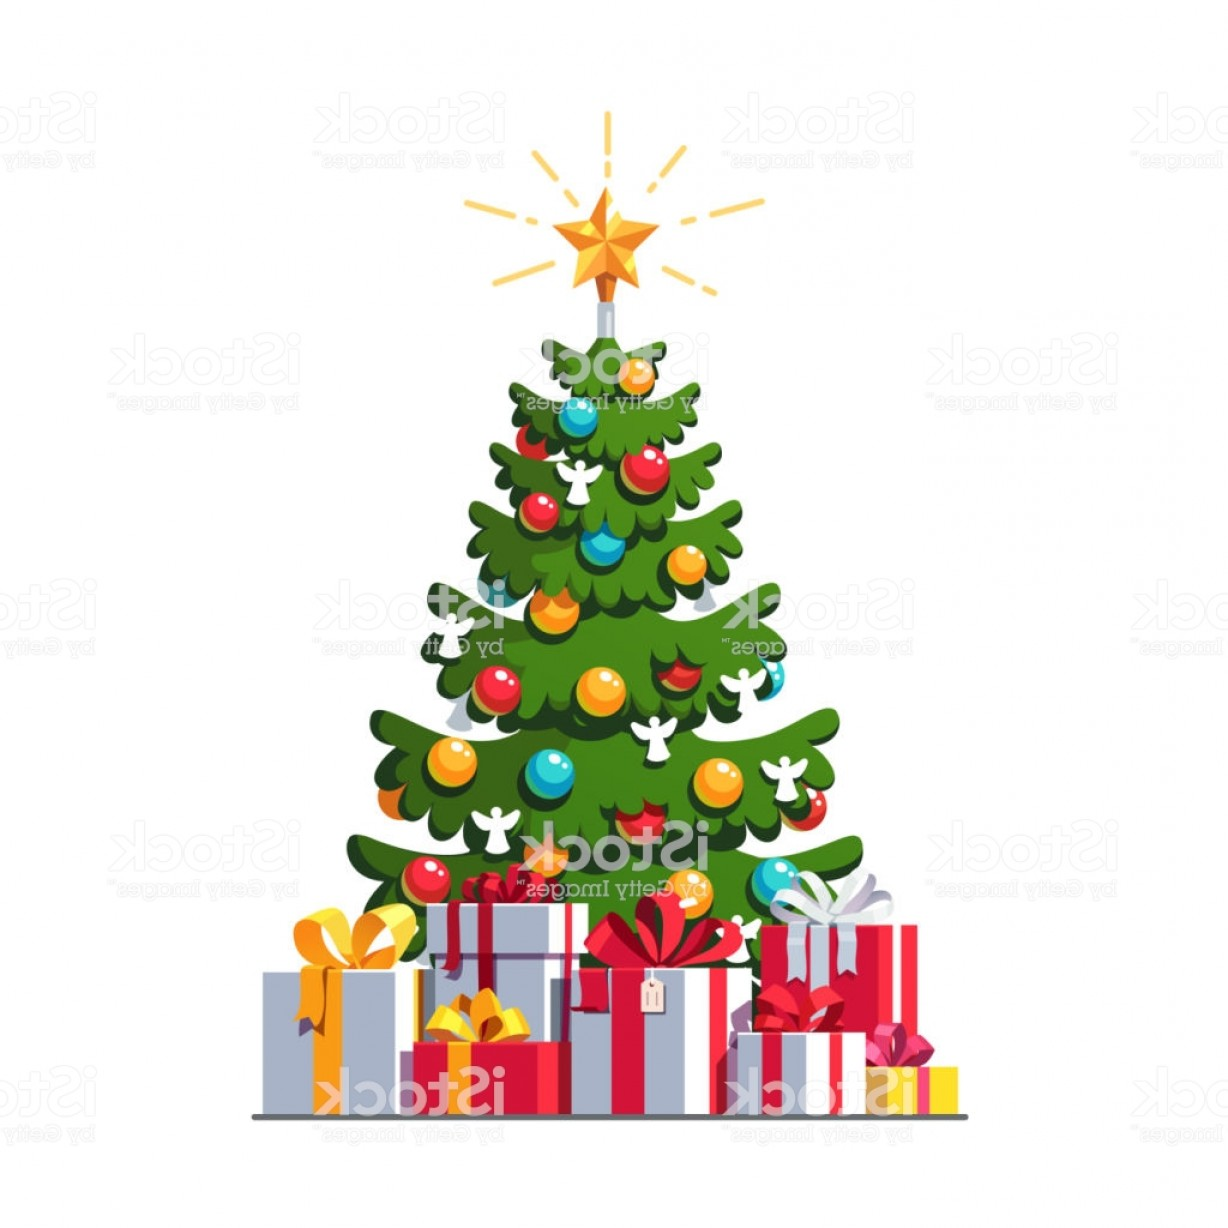 Christmas Tree Art Large Vector Format: Christmas Tree Decorated With Baubles And Shining Star Big Pile Of Wrapped Gift Gm